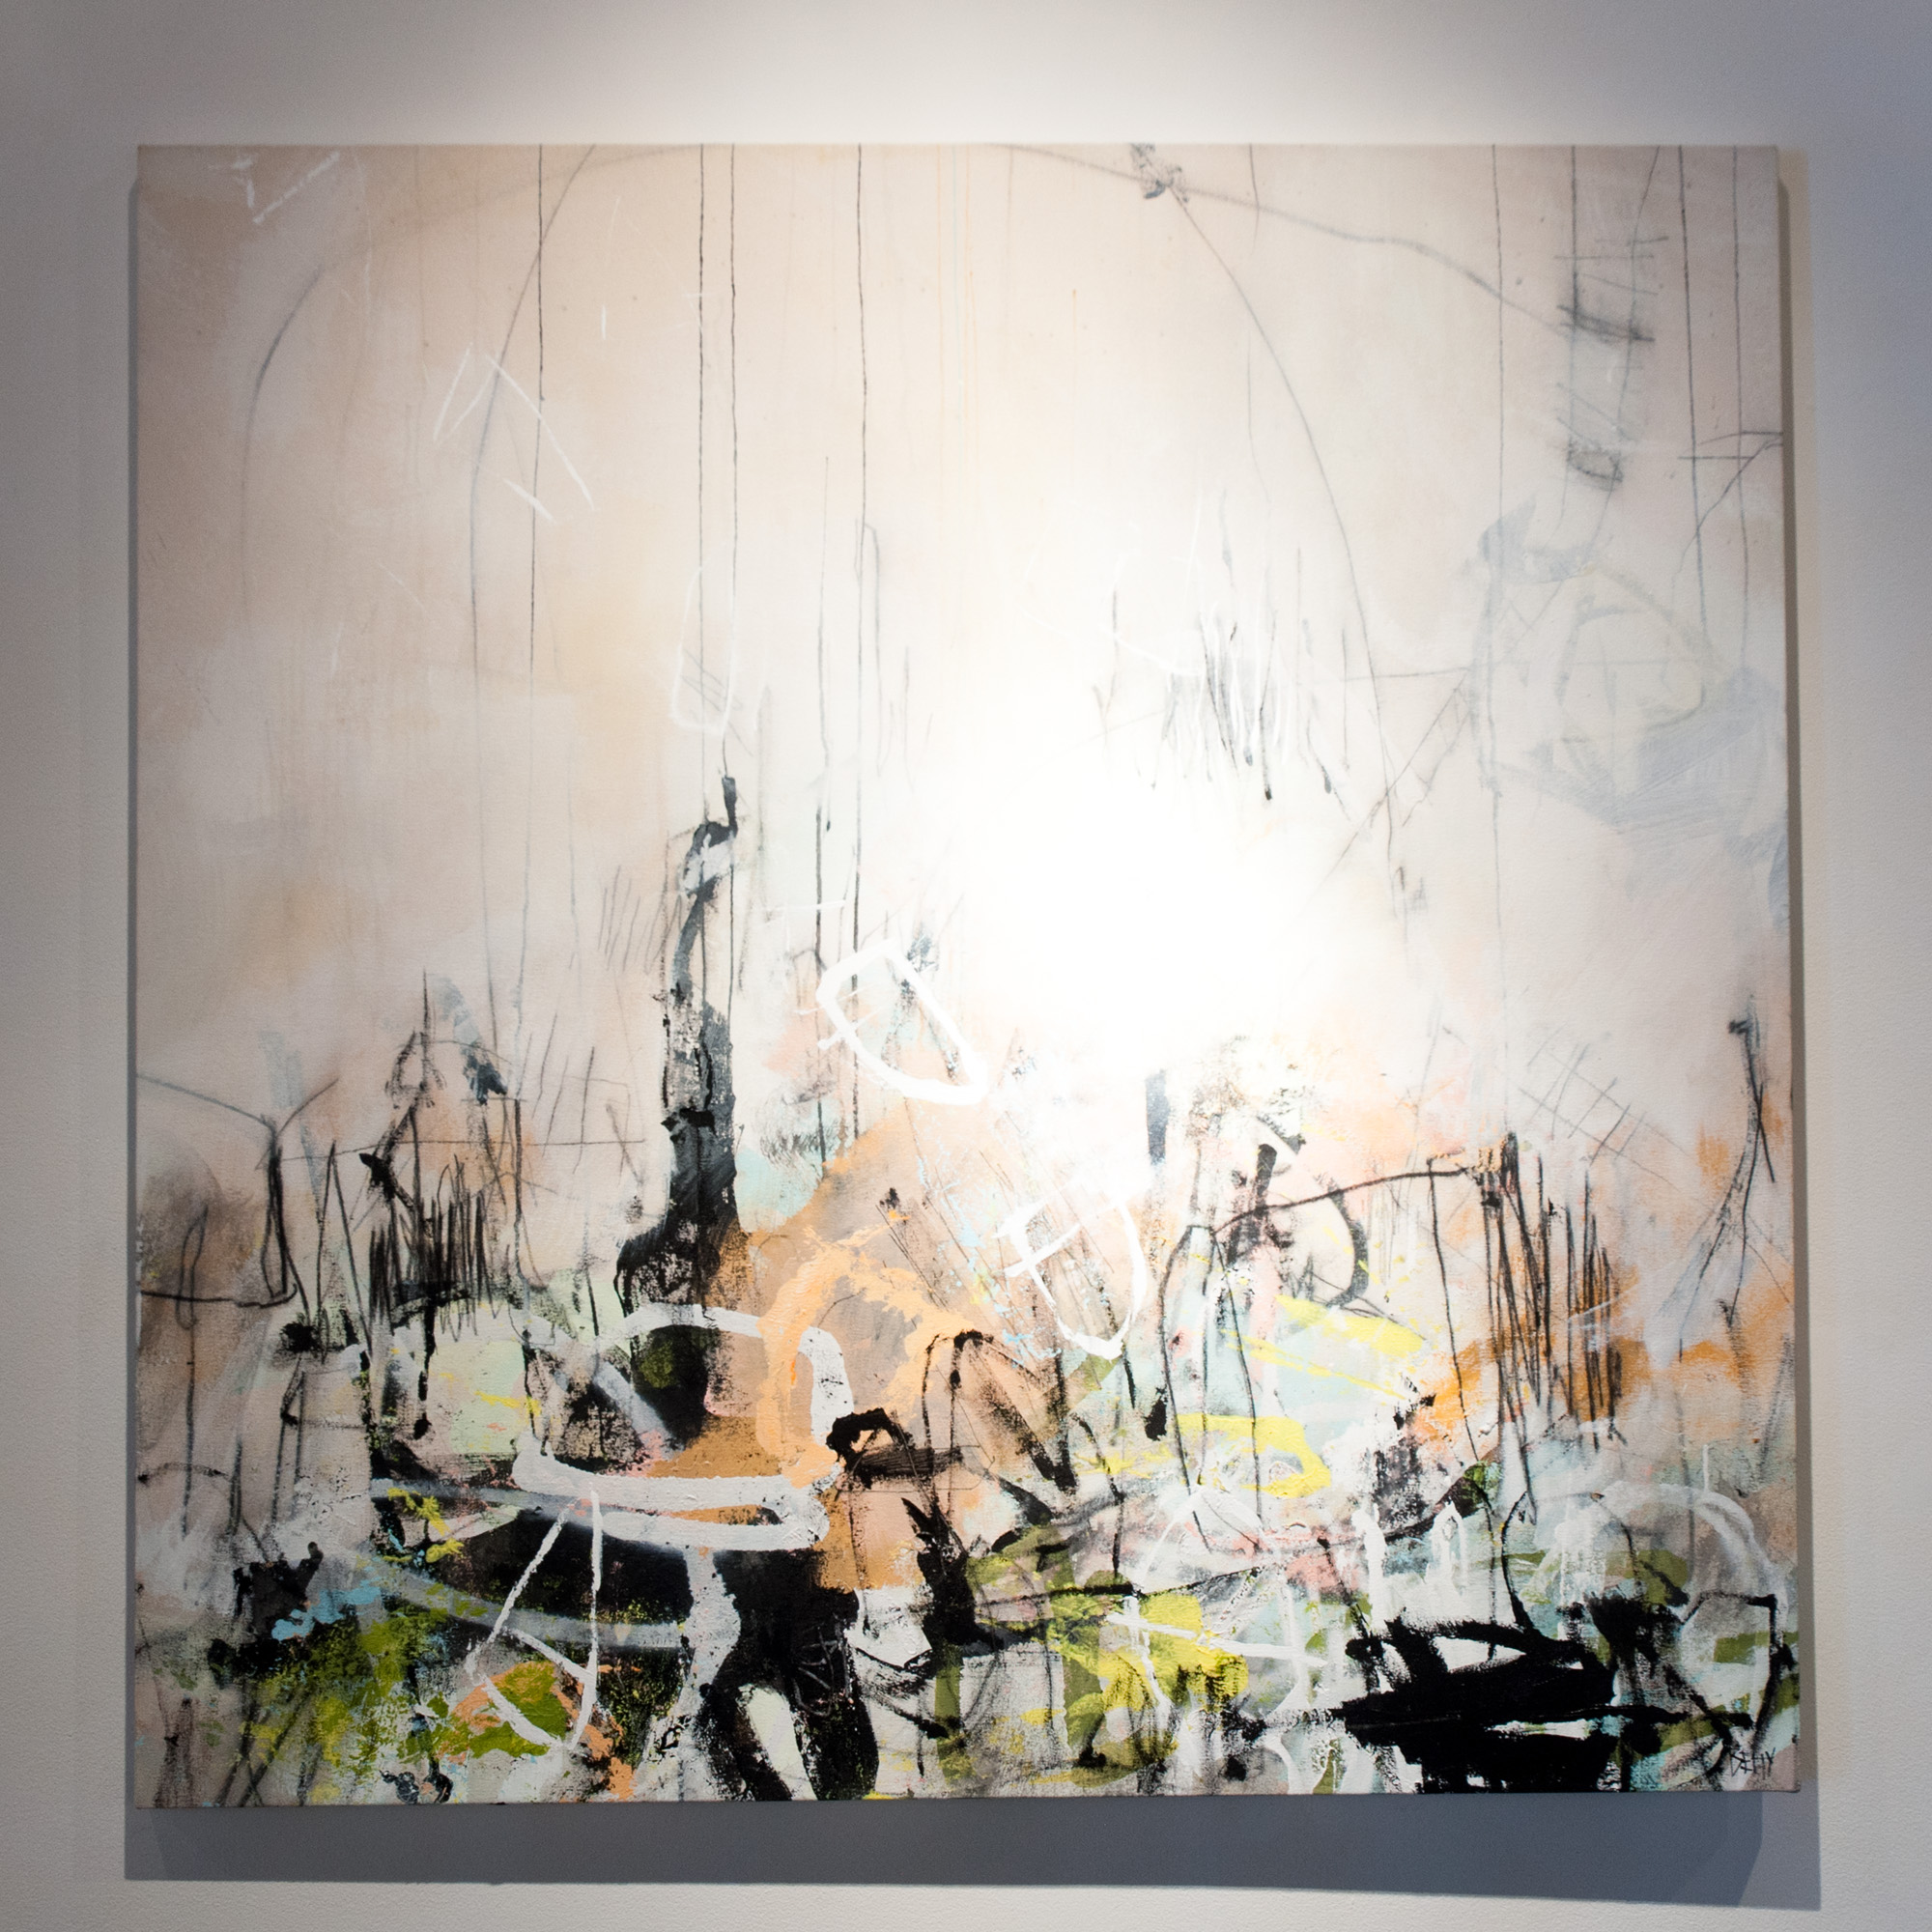 Lauren Betty Chaos and Calm II mixed media on canvas 49 x 49 inches LBE 001G